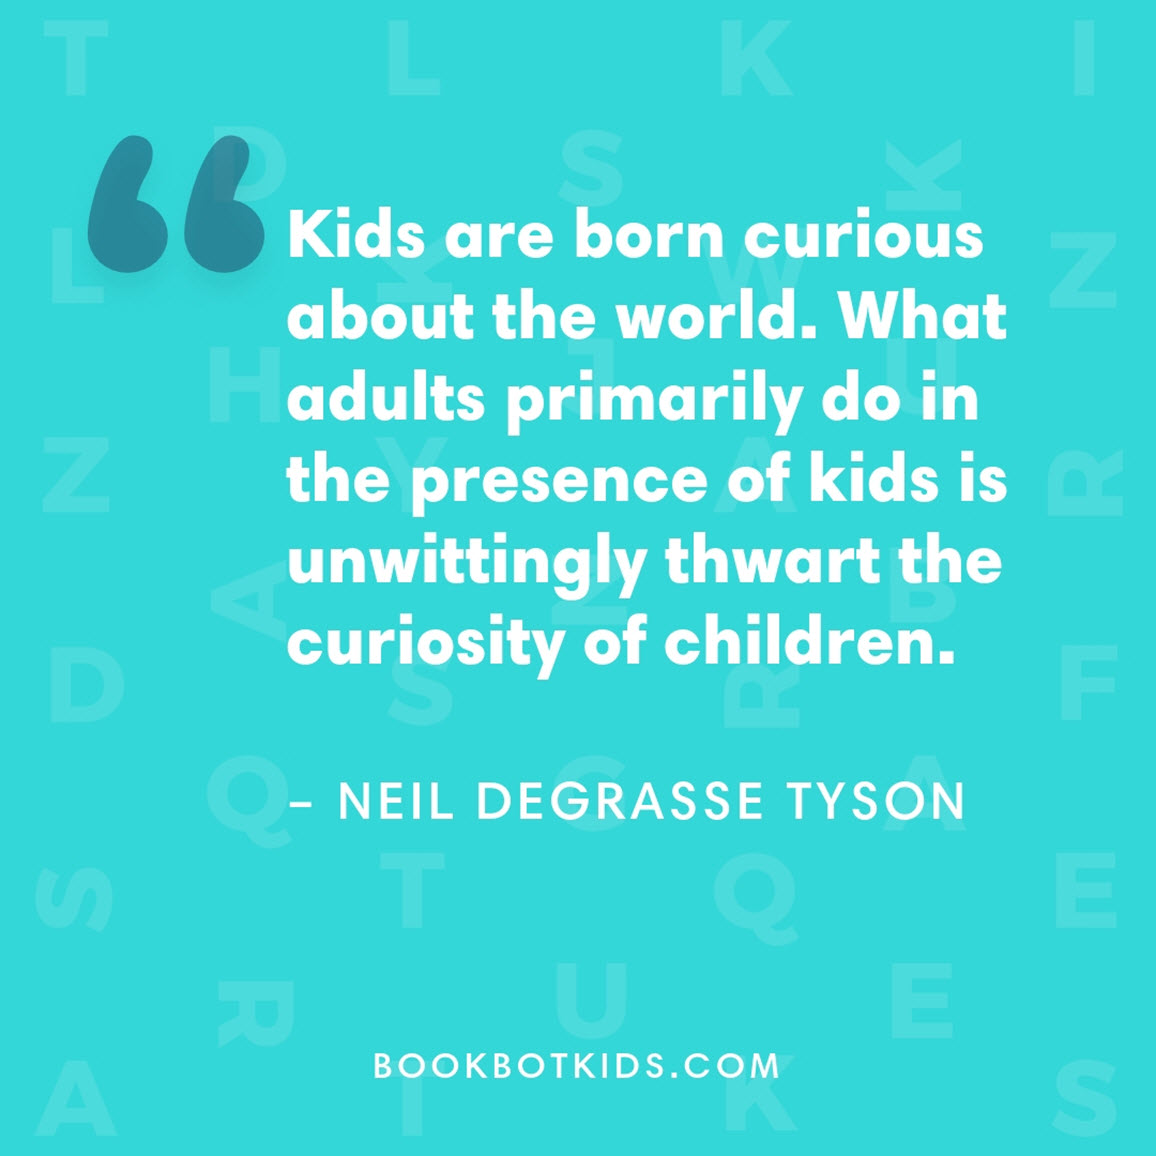 Kids are born curious about the world. What adults primarily do in the presence of kids is unwittingly thwart the curiosity of children. – Neil deGrasse Tyson